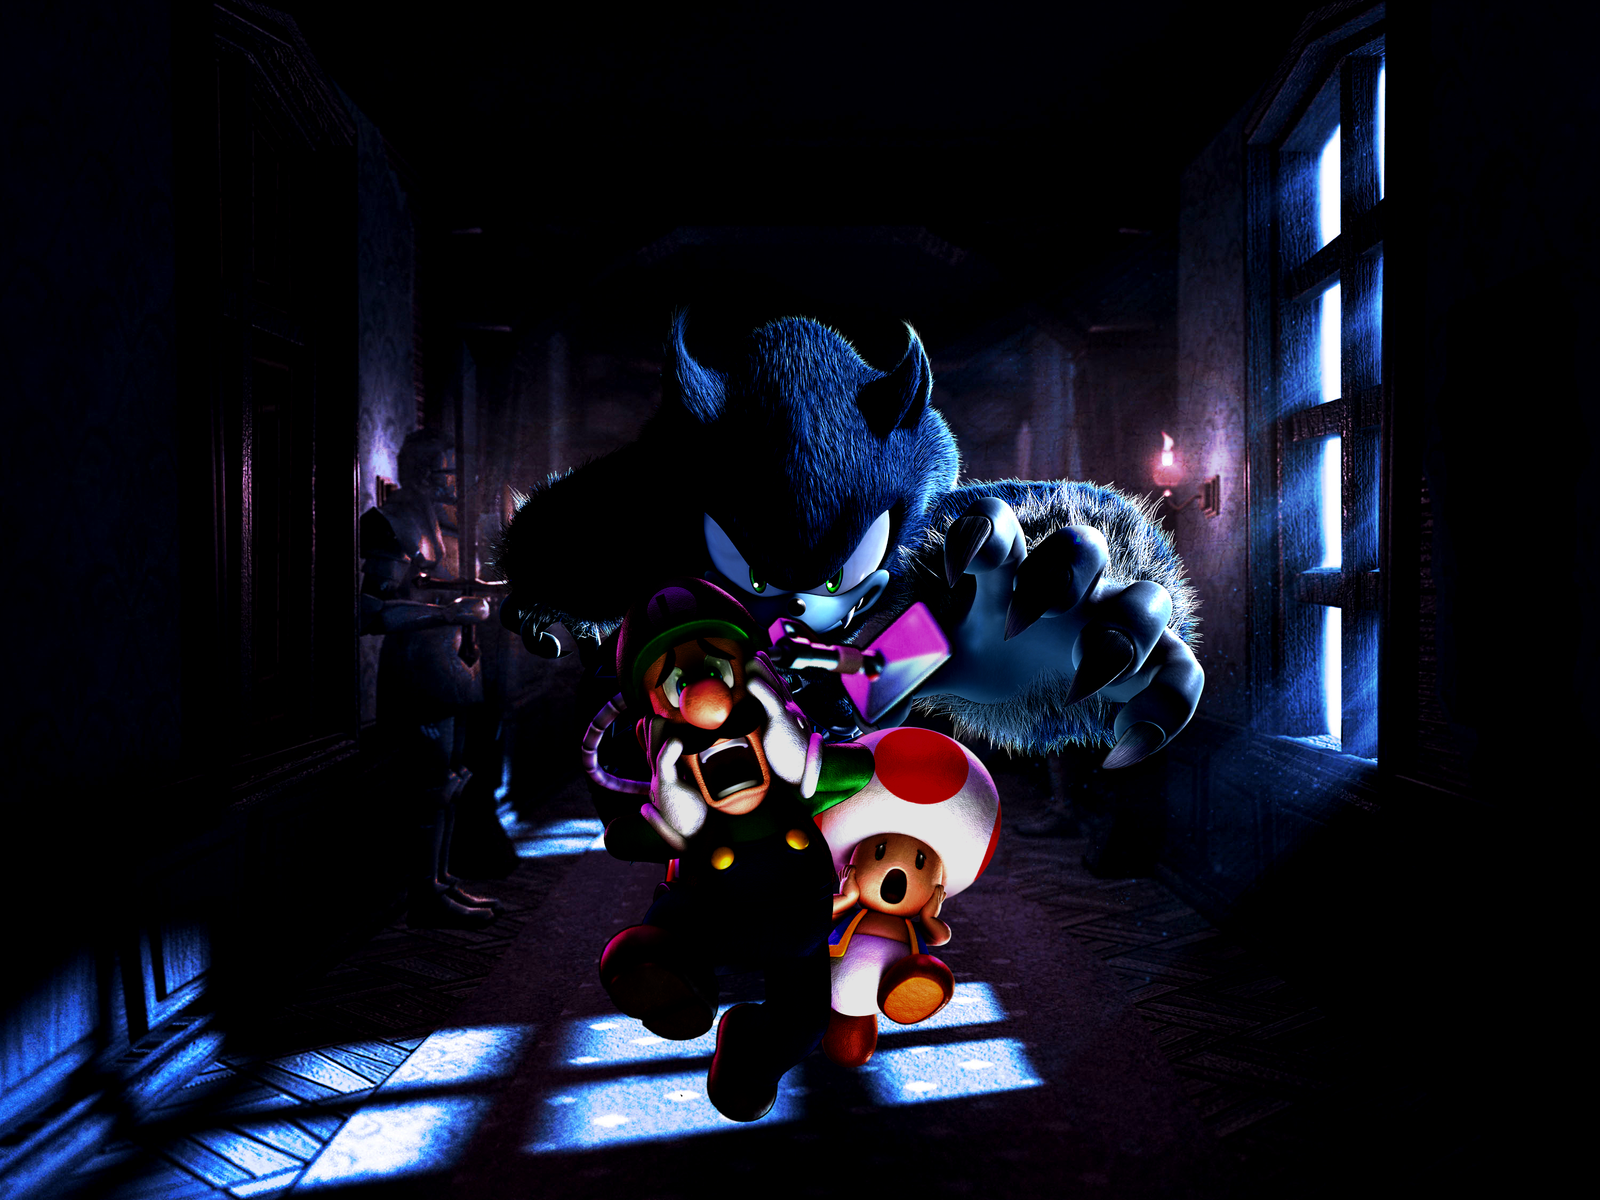 Luigis Mansion A Werehog In The Gloomy Manor By Legend Tony980